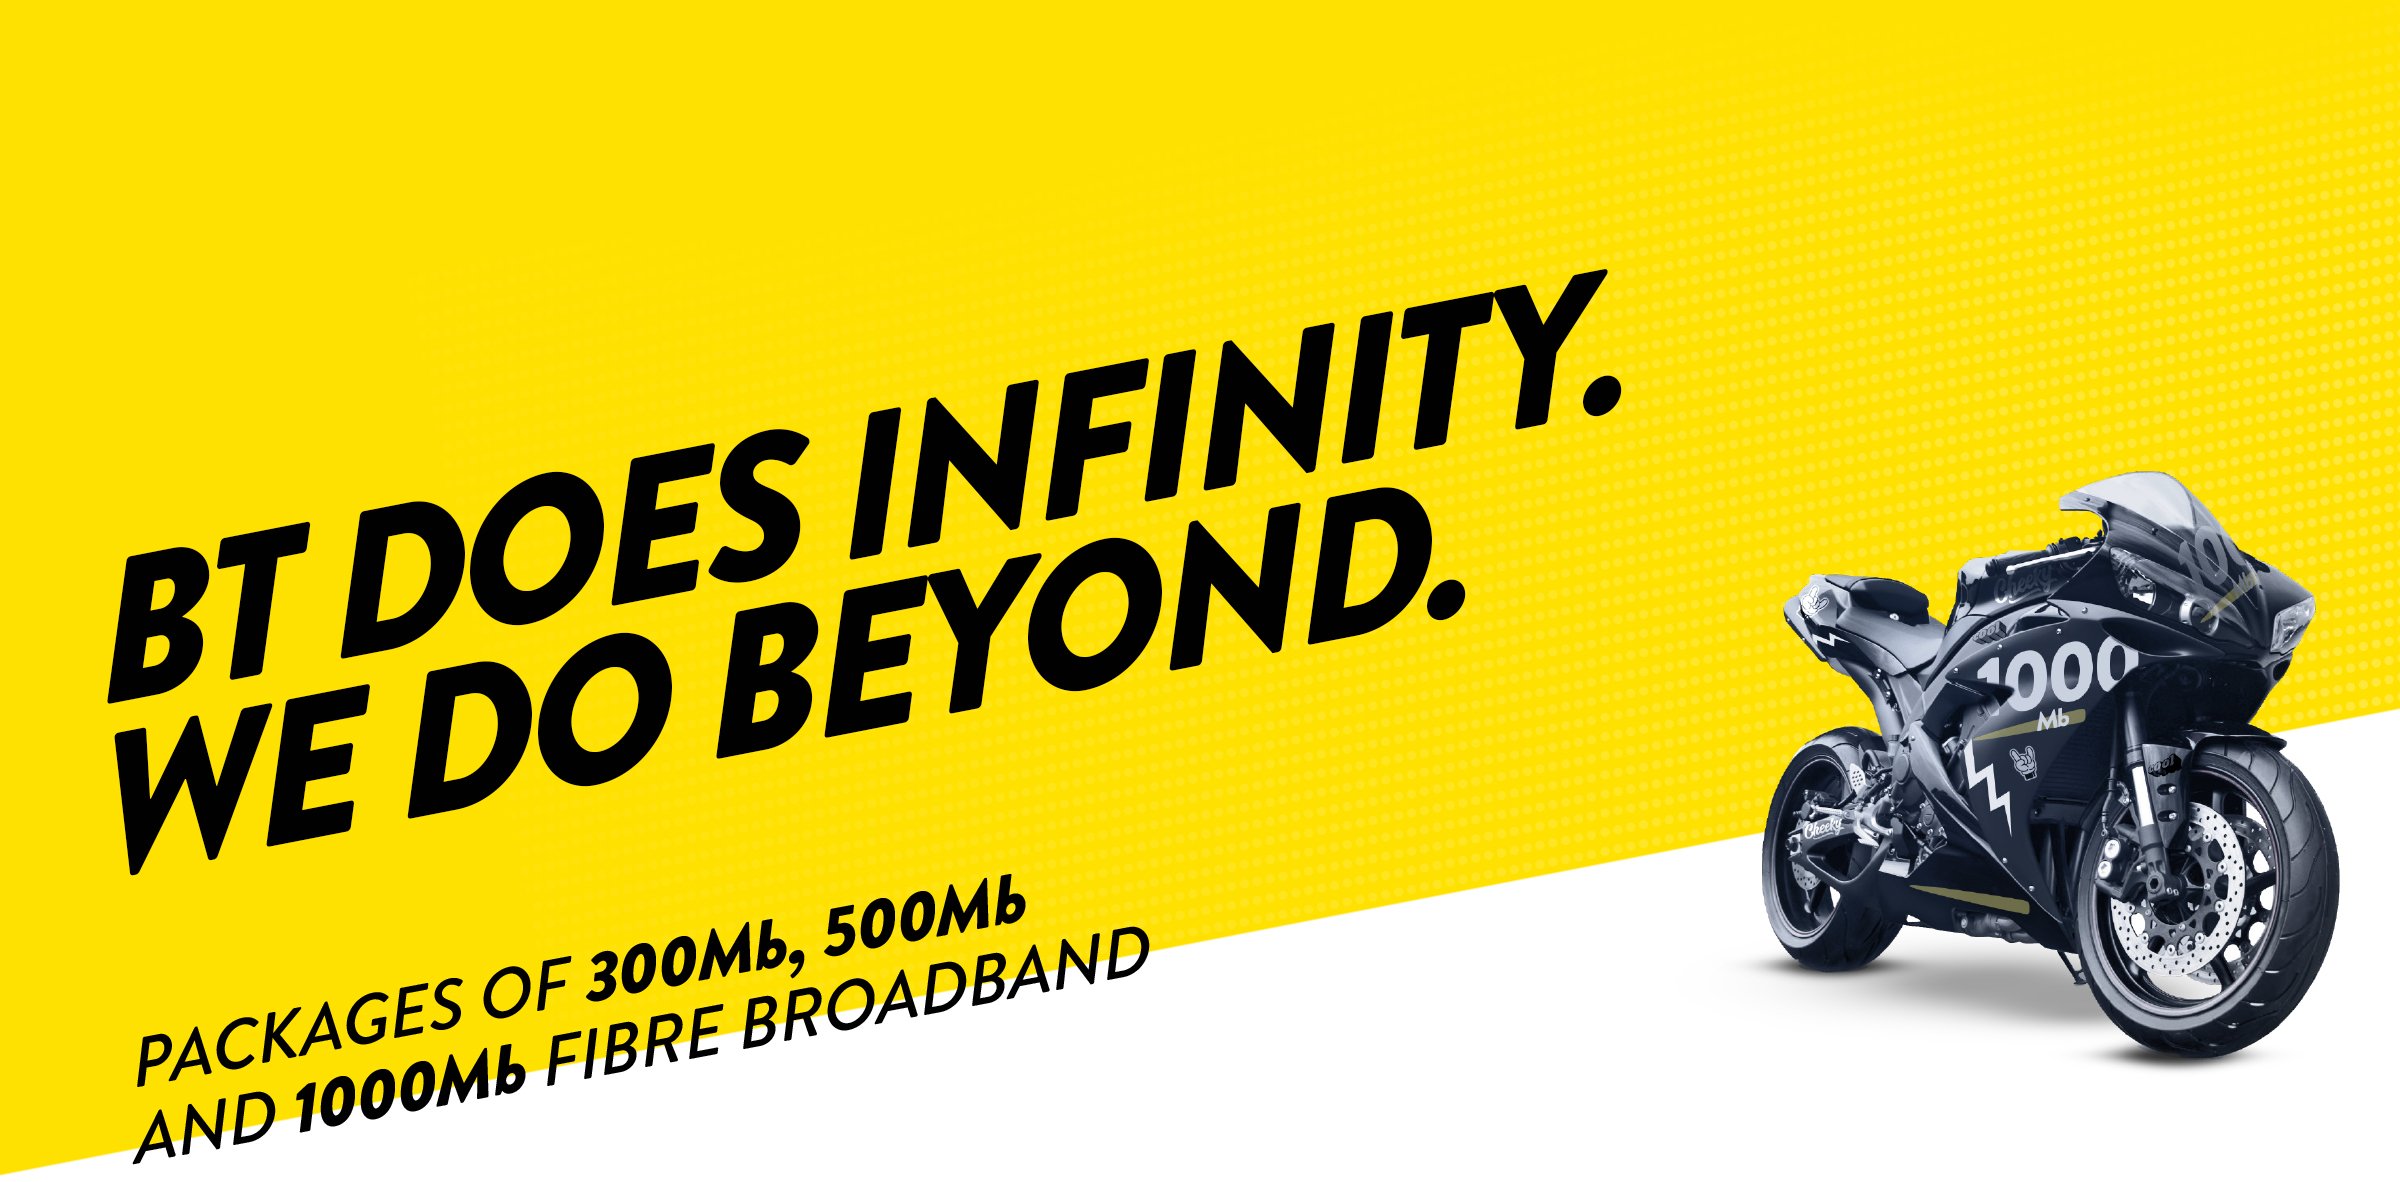 BT DOES INFINITY, WE DO BEYOND. Packages of 300mb, 500mb and 1000mb Fibre Broadband.